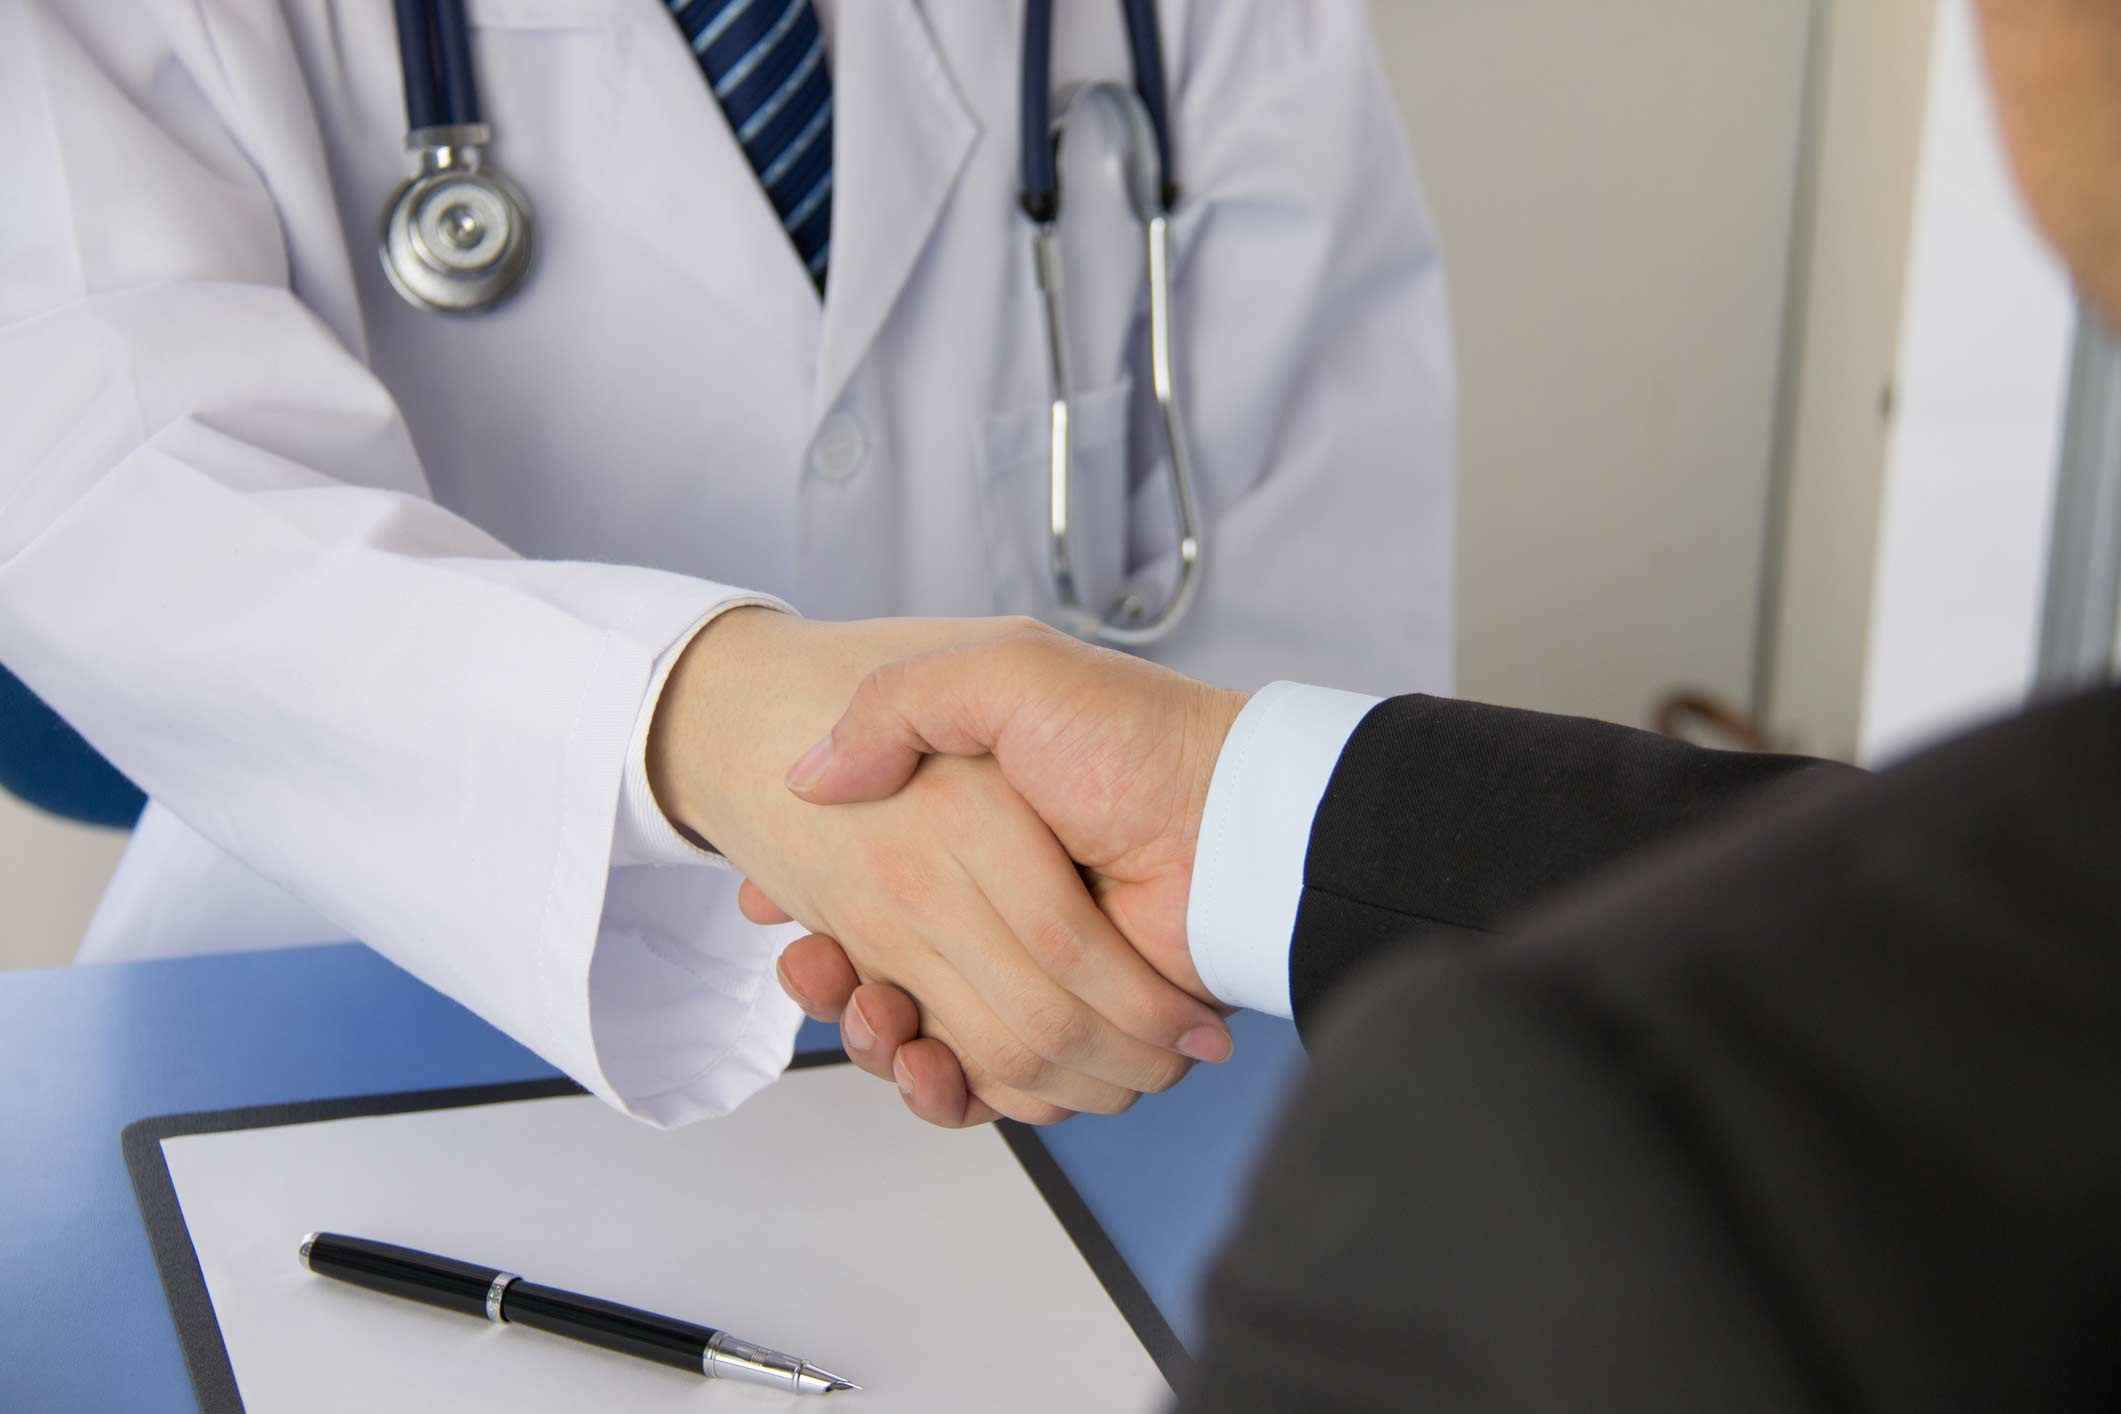 Doctor Shaking Hand with Professional